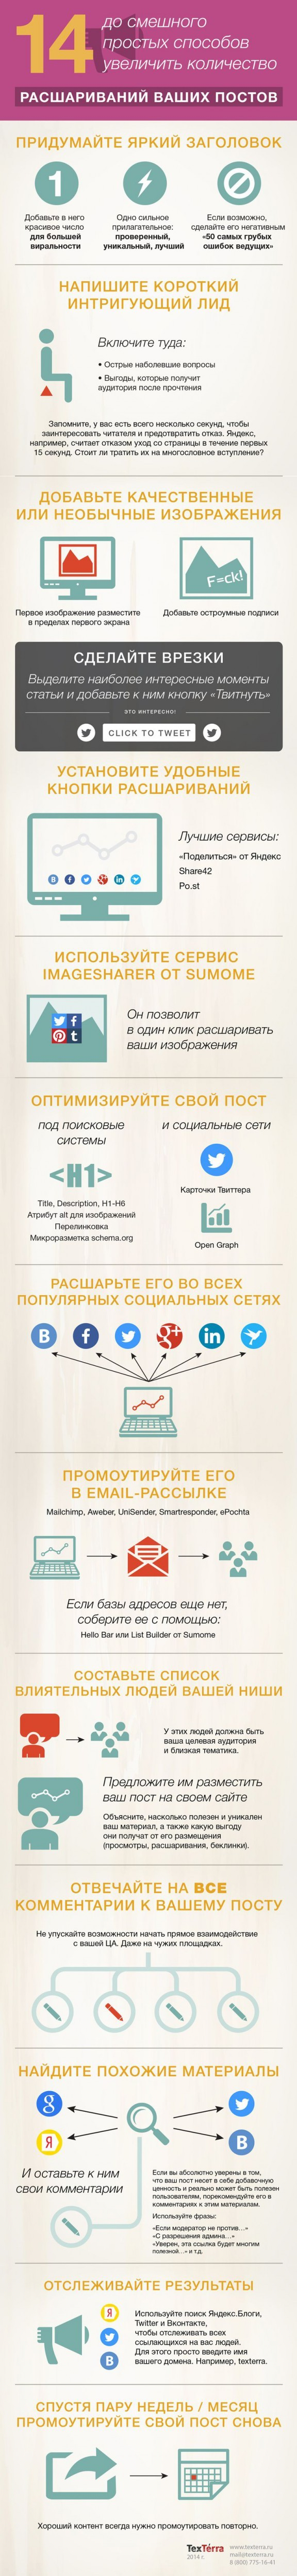 14-primerov-infografiki-po-kontent-marketingu_3